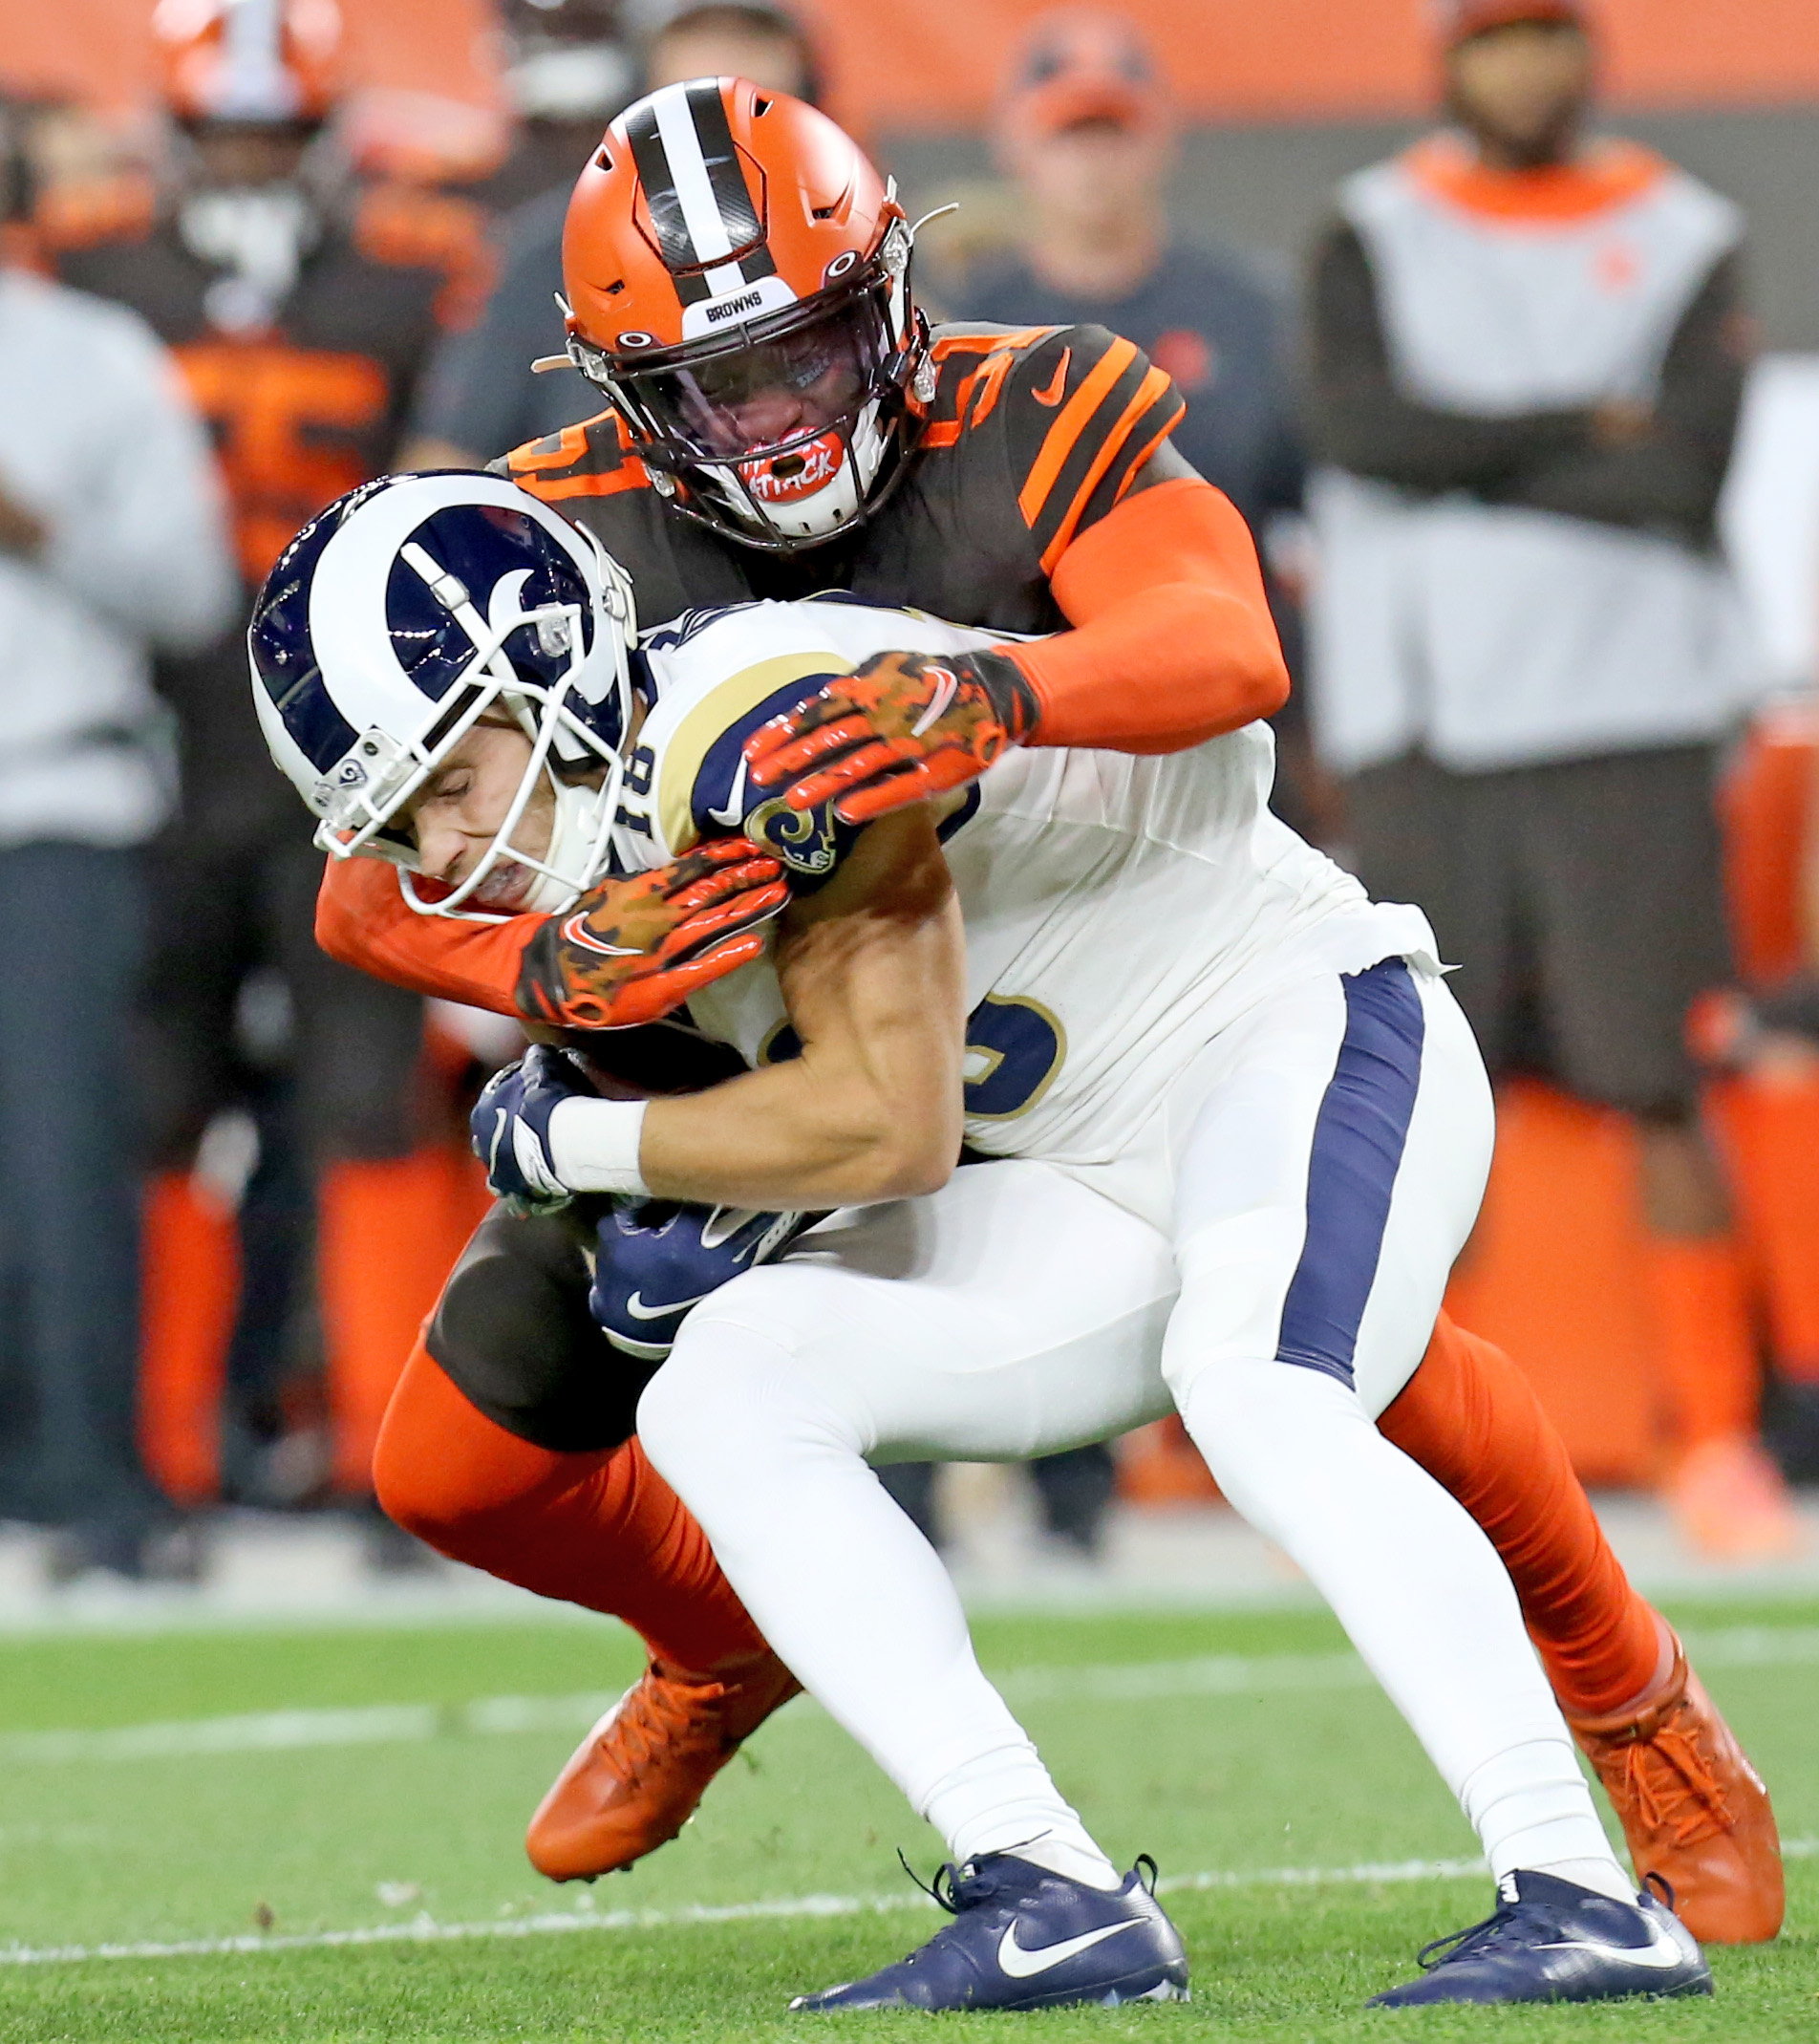 Cleveland Browns-L.A. Rams Halftime Scribbles: Tough defense keeping it close; offense sputters; Browns lead, 6-3